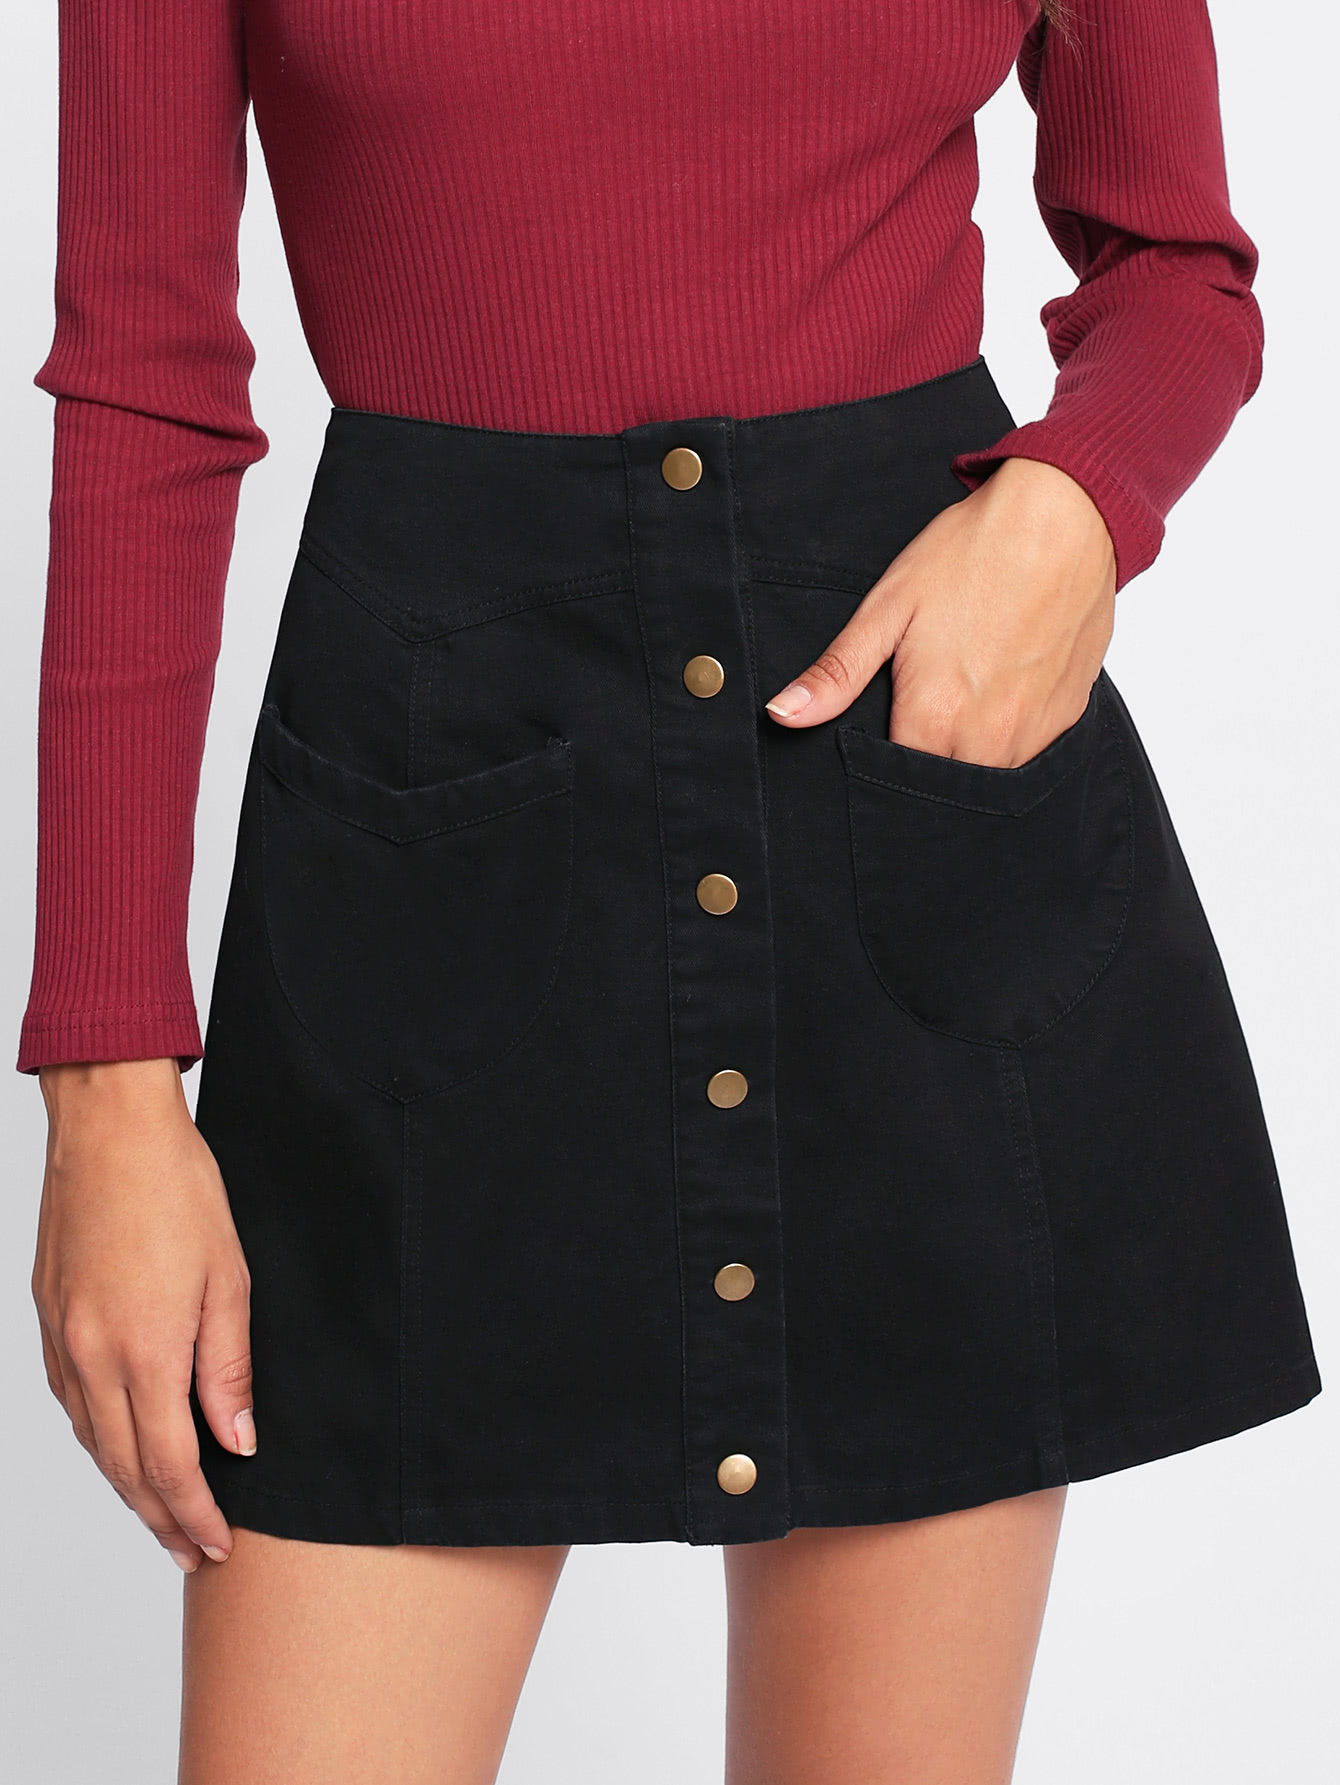 Patch Pocket Button Up Skirt